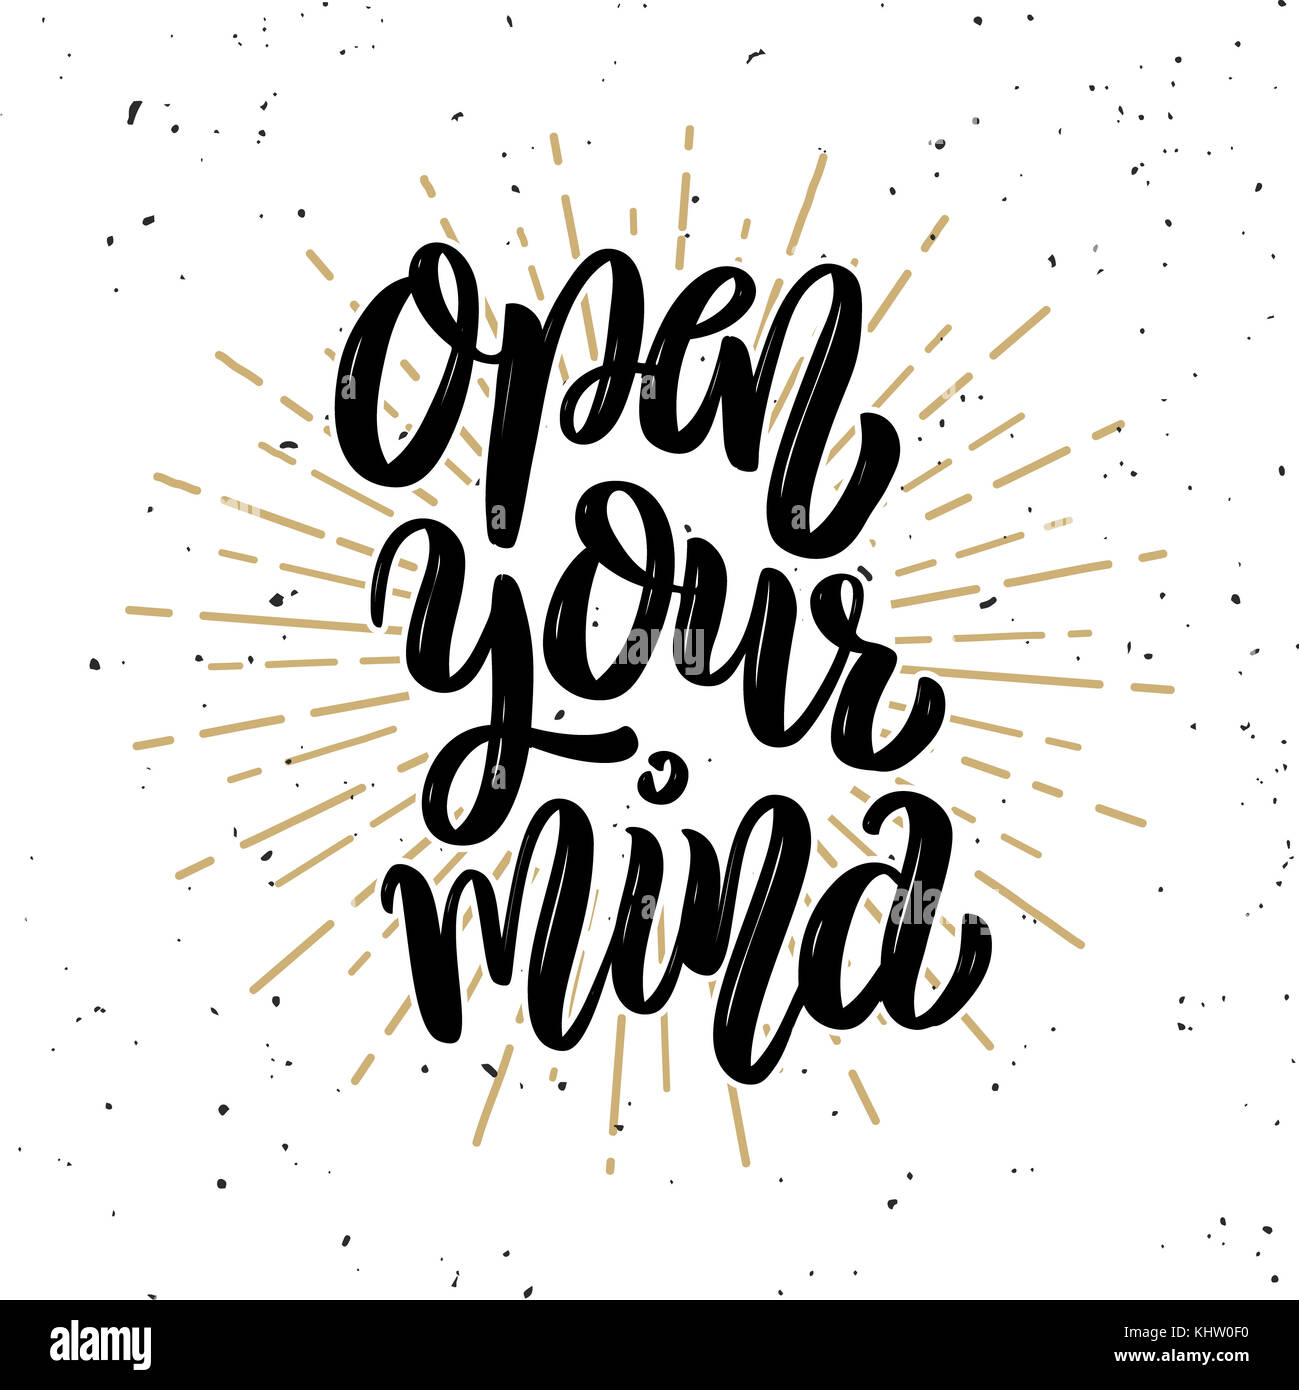 Open Your Mind Hand Drawn Motivation Lettering Quote Design